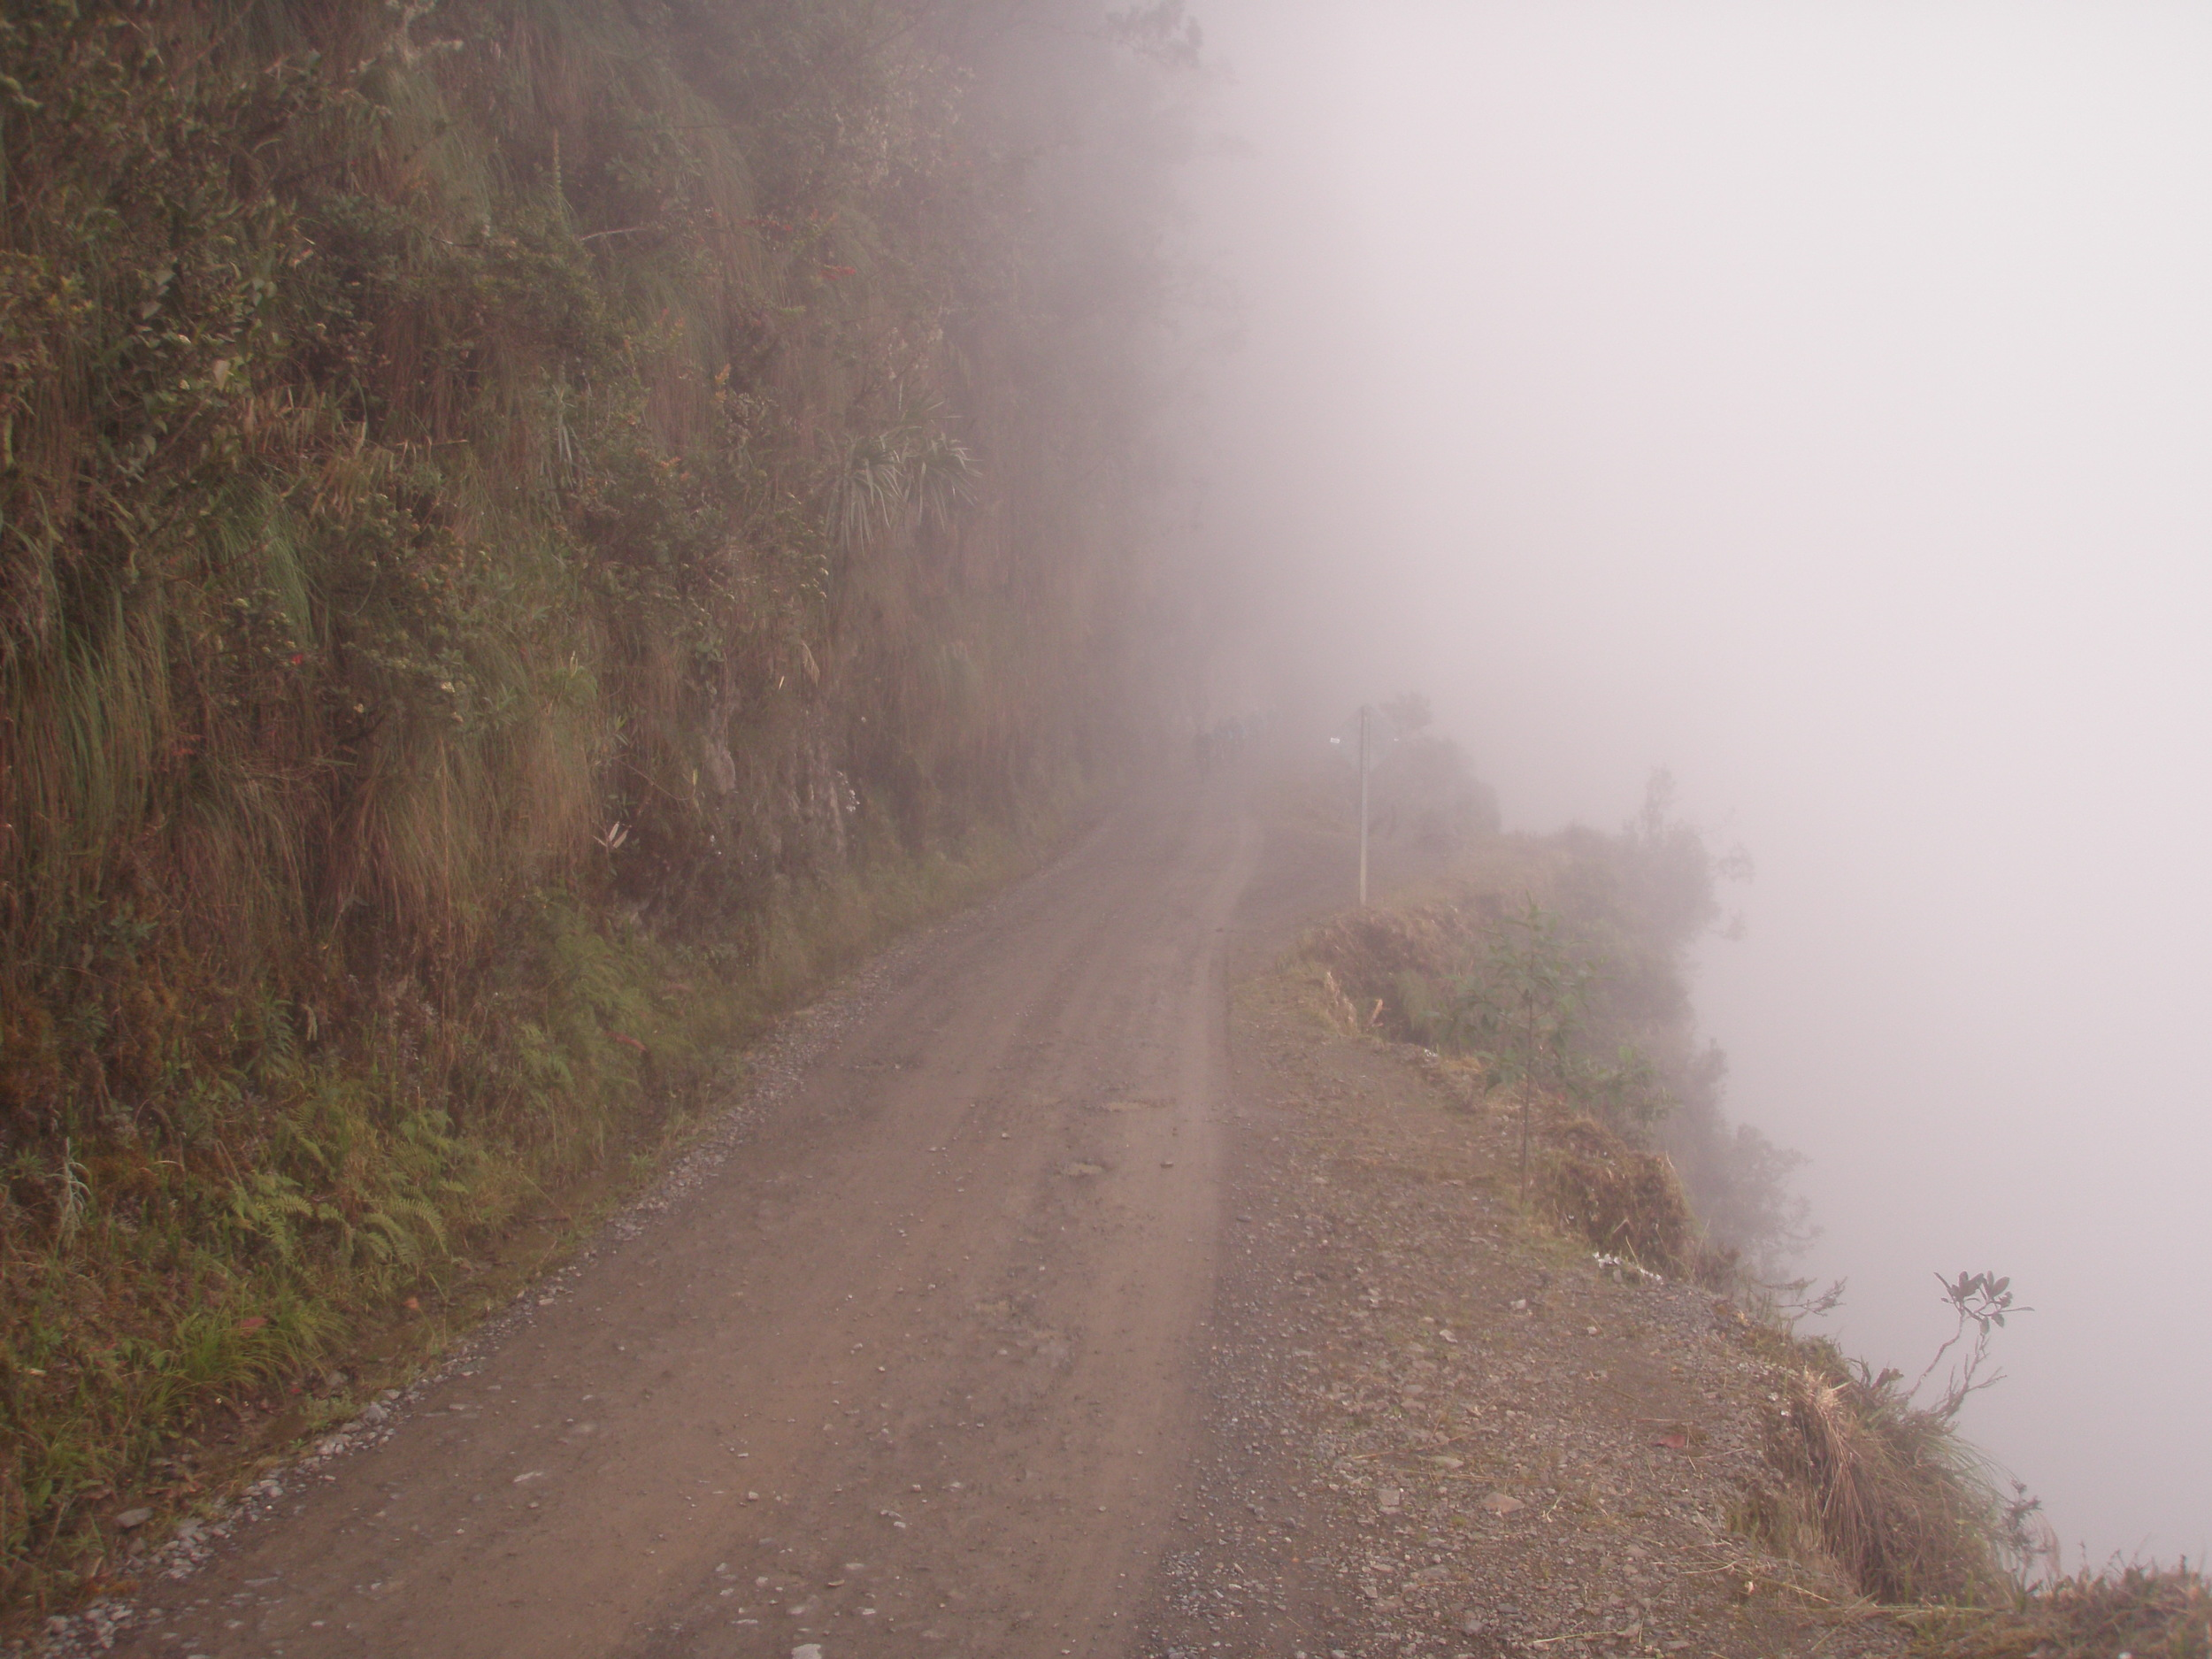 Visibility tends to be extremely limited